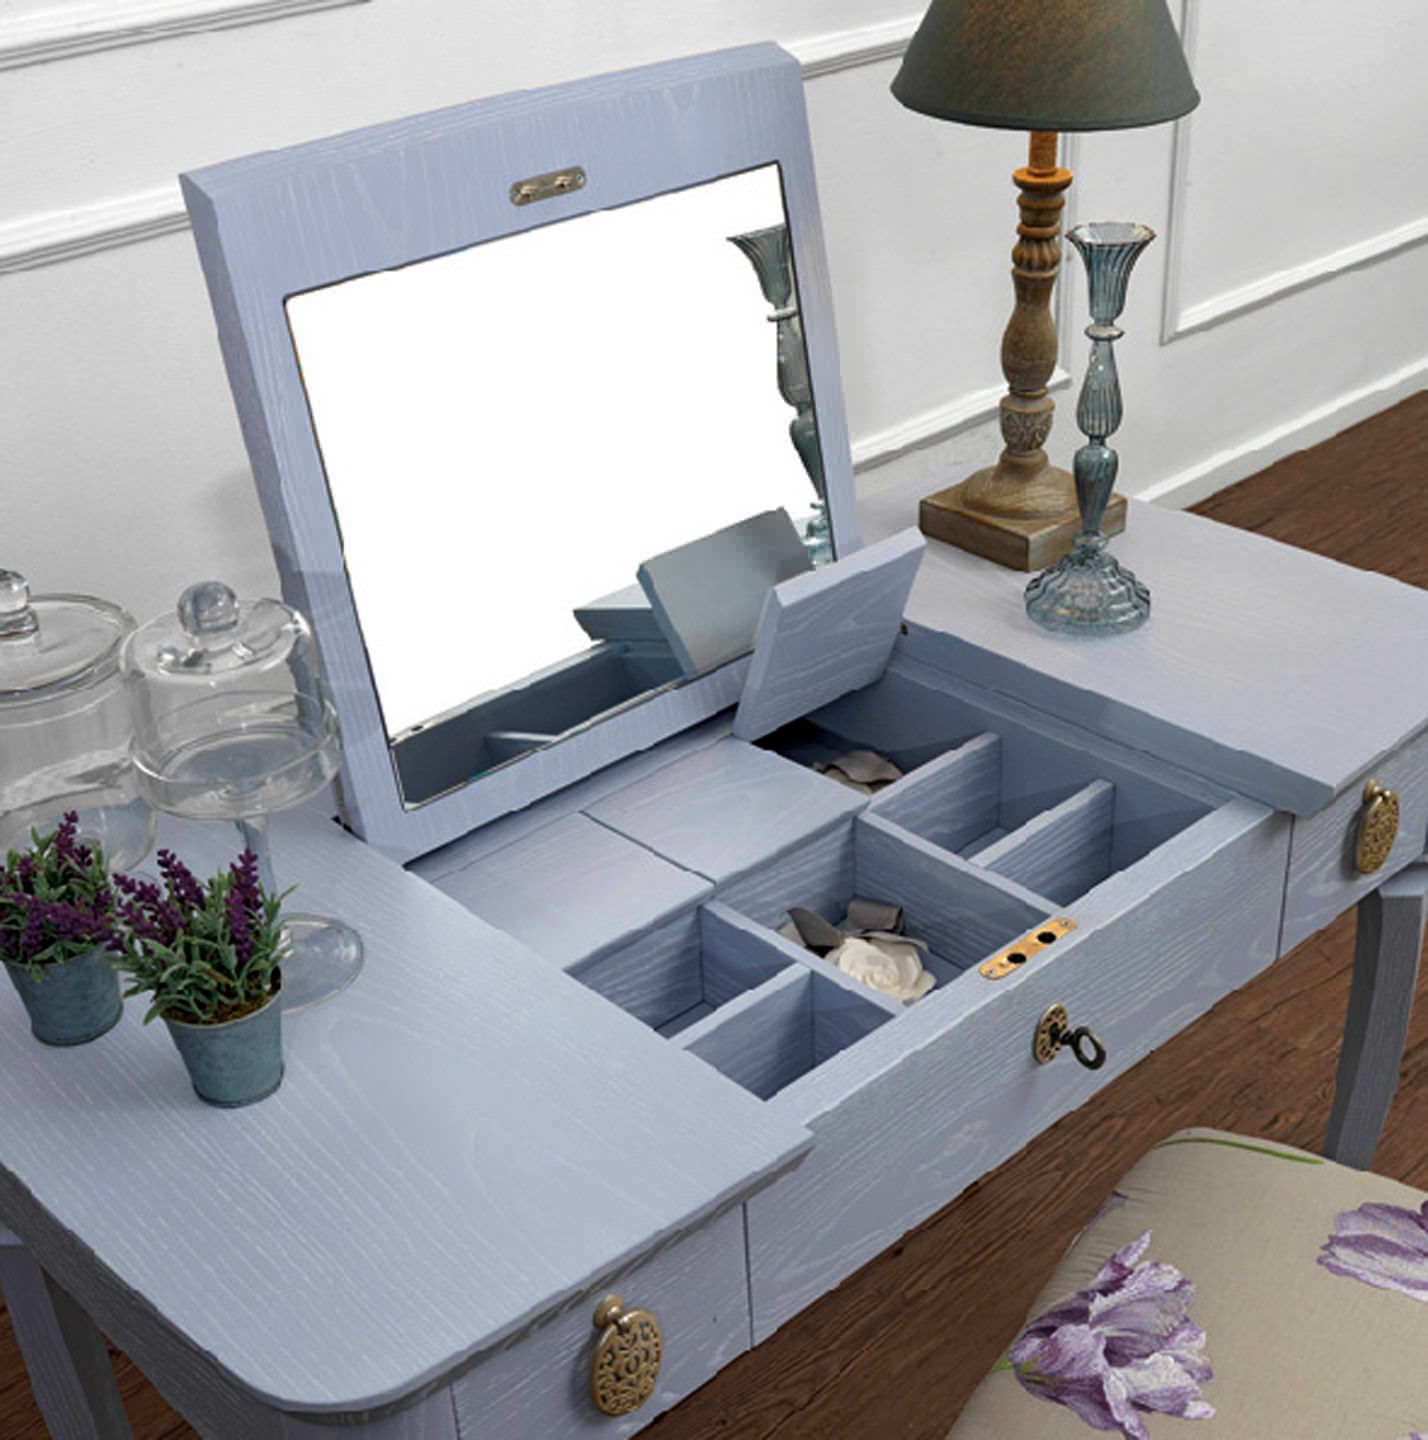 Modern bedroom dressing table with mirror - Dressing Table Designs With Full Length Mirror 17 Best Images About Dressing Tables On Table